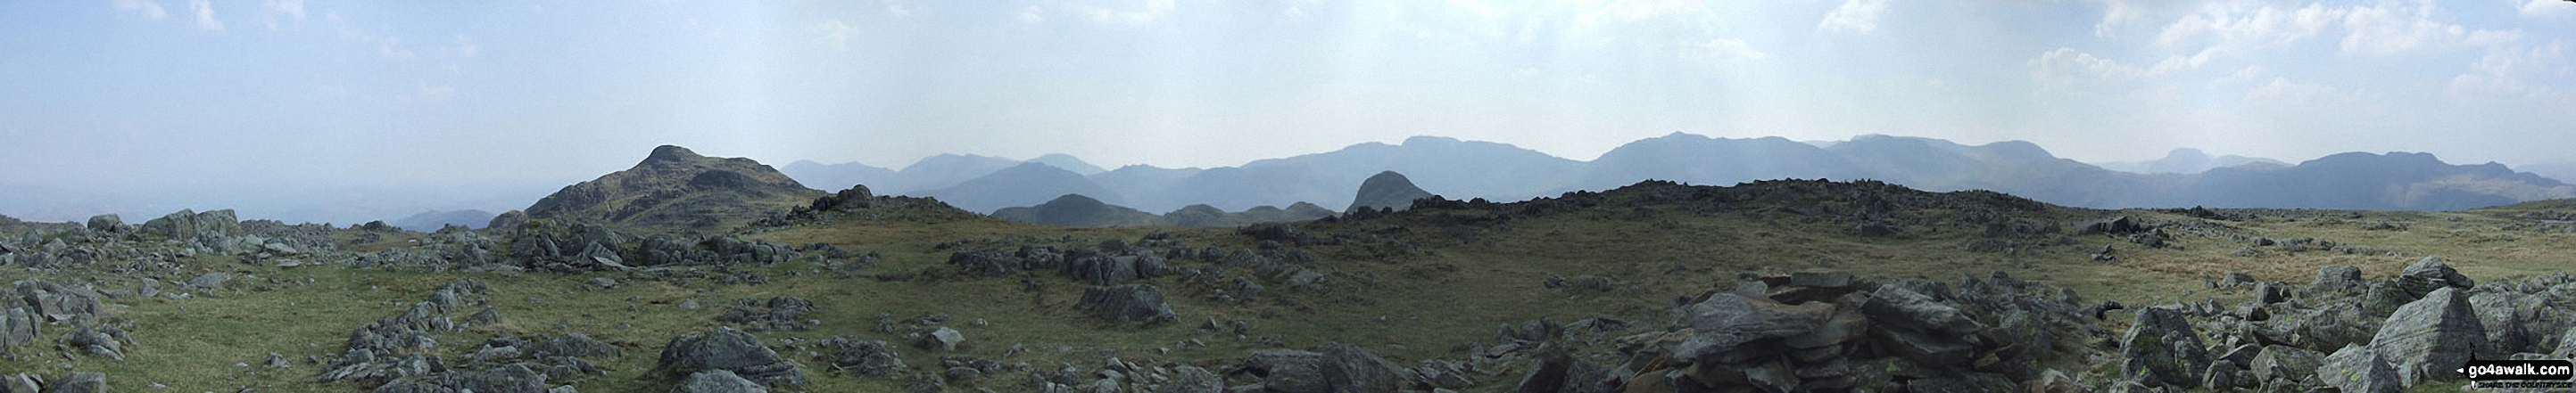 *Harrison Stickle (left) and Pike of Stickle (right) and the Langdale Pikes Plateau from Thunacar Knott